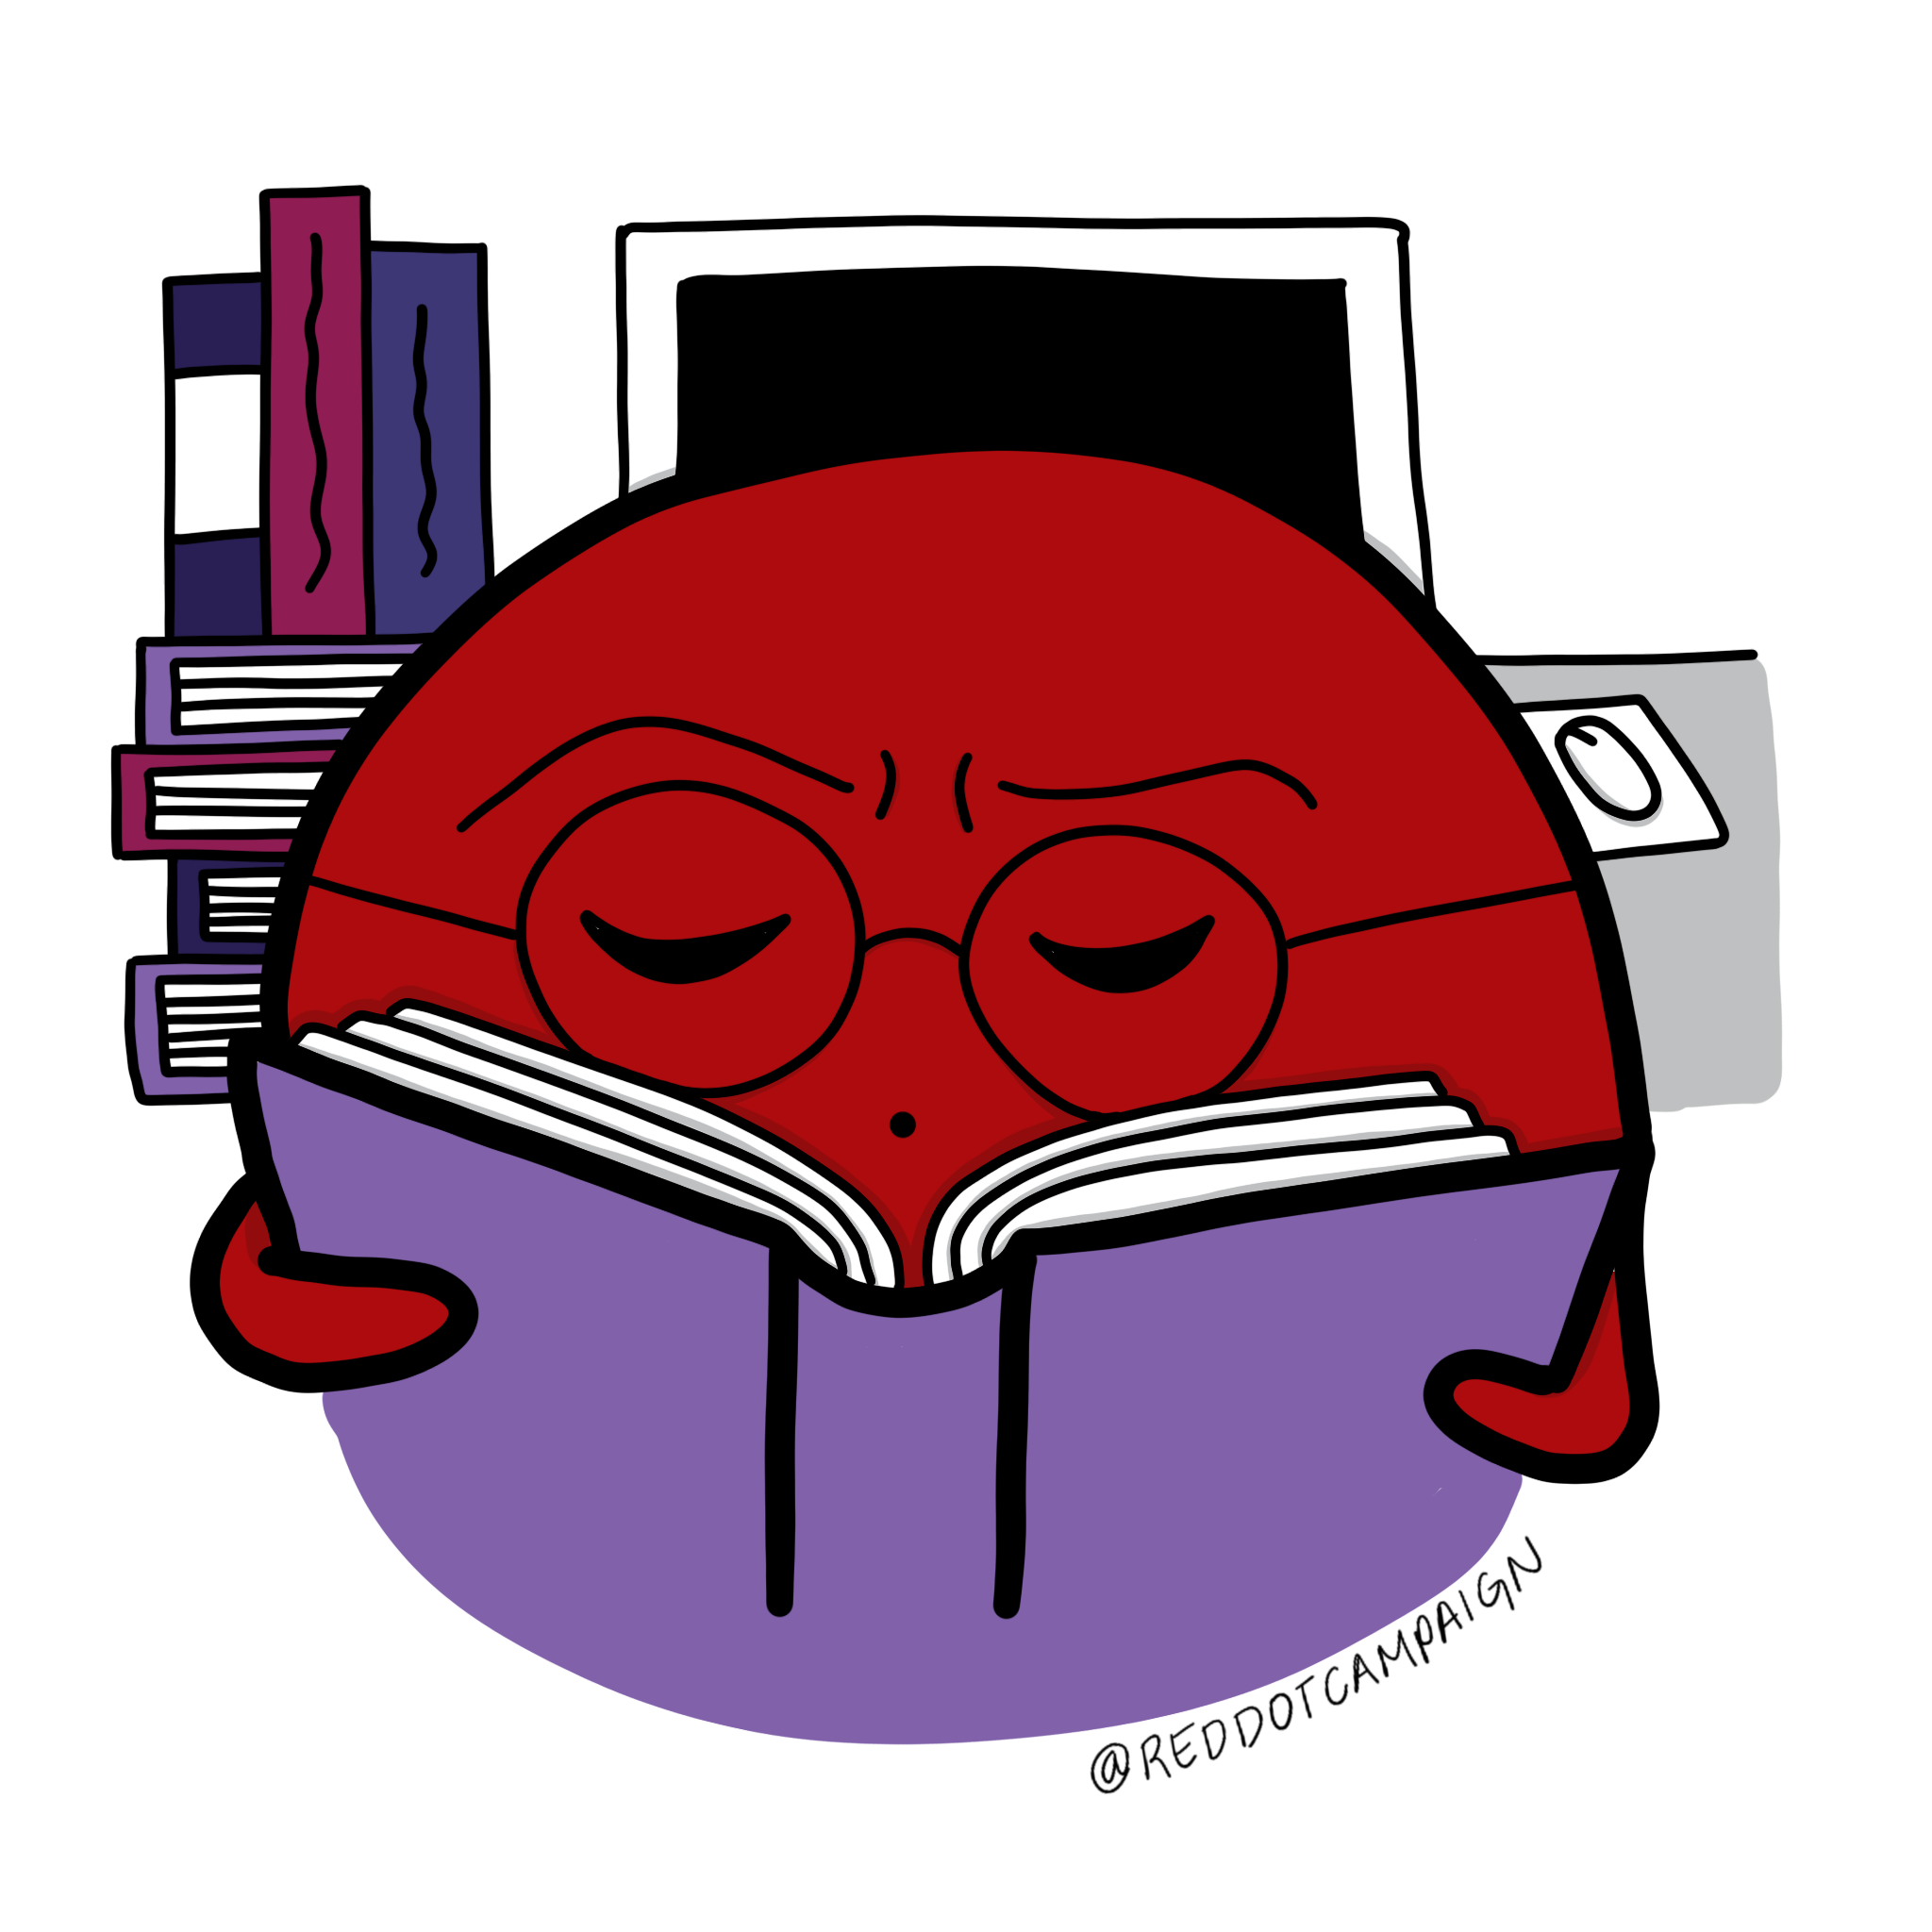 We-research-sticker.png